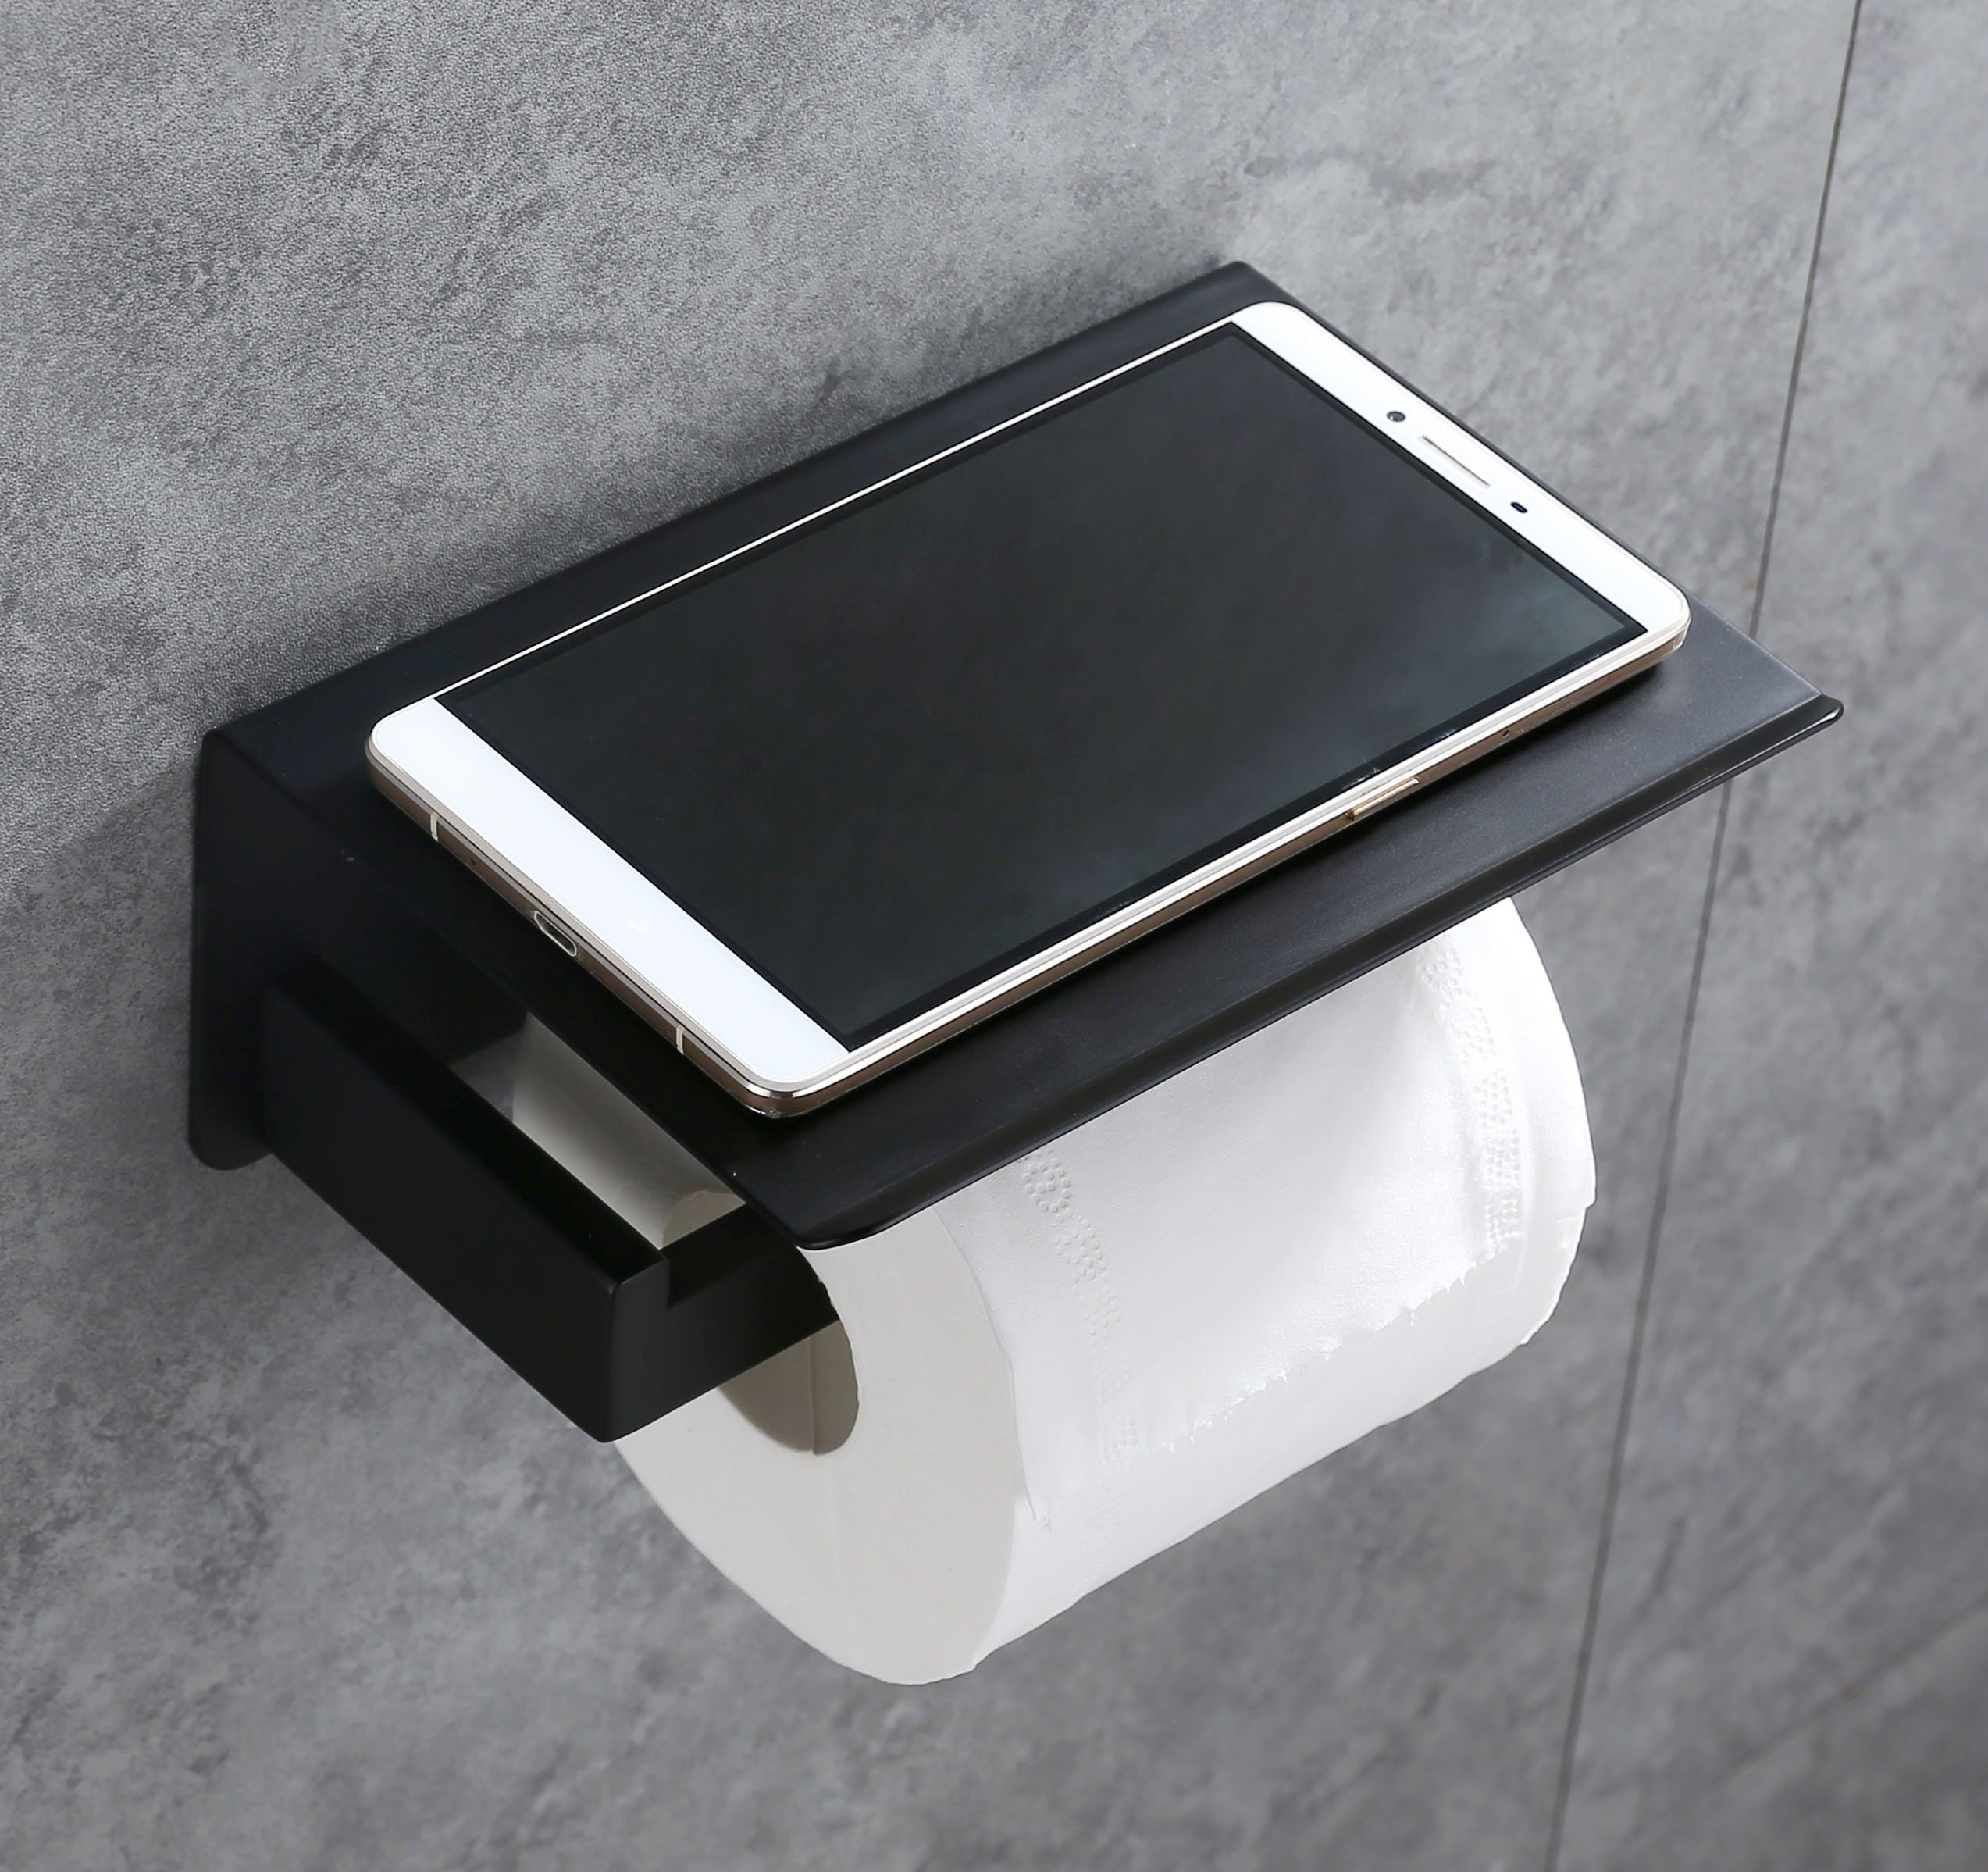 Toilet Paper Holder Sus304 Stainless Steel Bathroom Paper Tissue Holder With Mobile Phone St Toilet Paper Holder Stainless Steel Bathroom Matte Black Bathroom